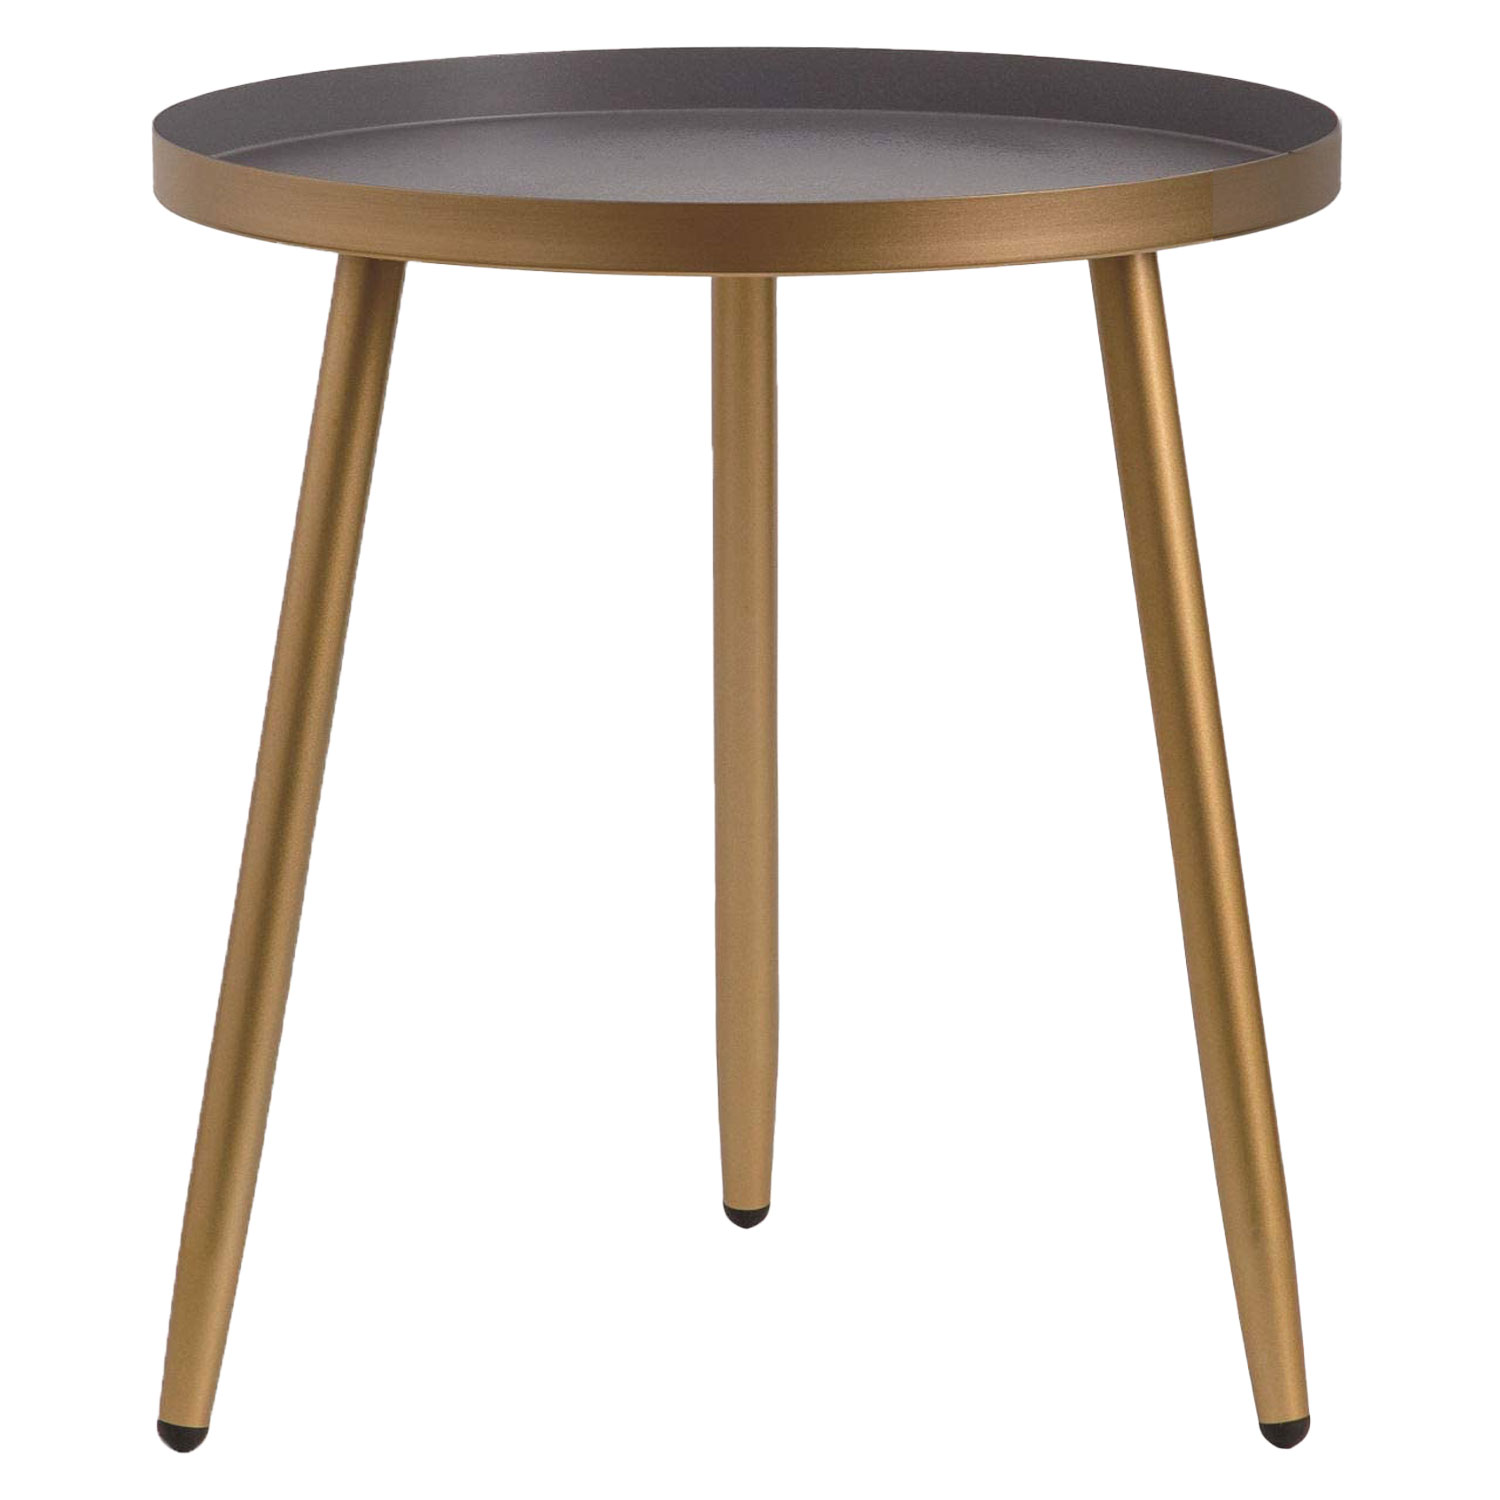 Round End Tables Living Room,Narrow Night Stands Round Side Table for Bedrooms